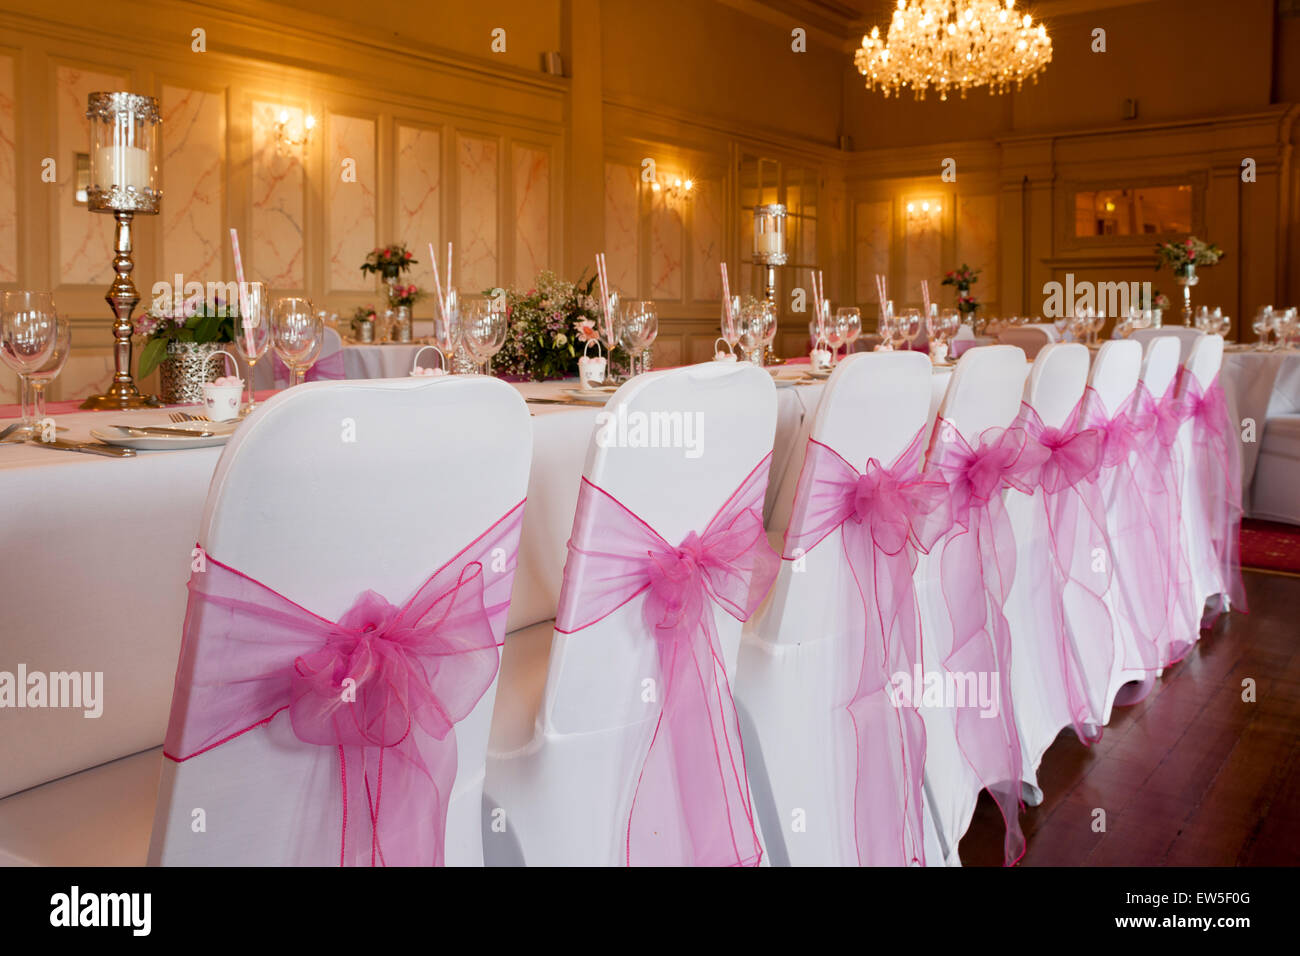 wedding top table place settings and chairs with bows - Stock Image